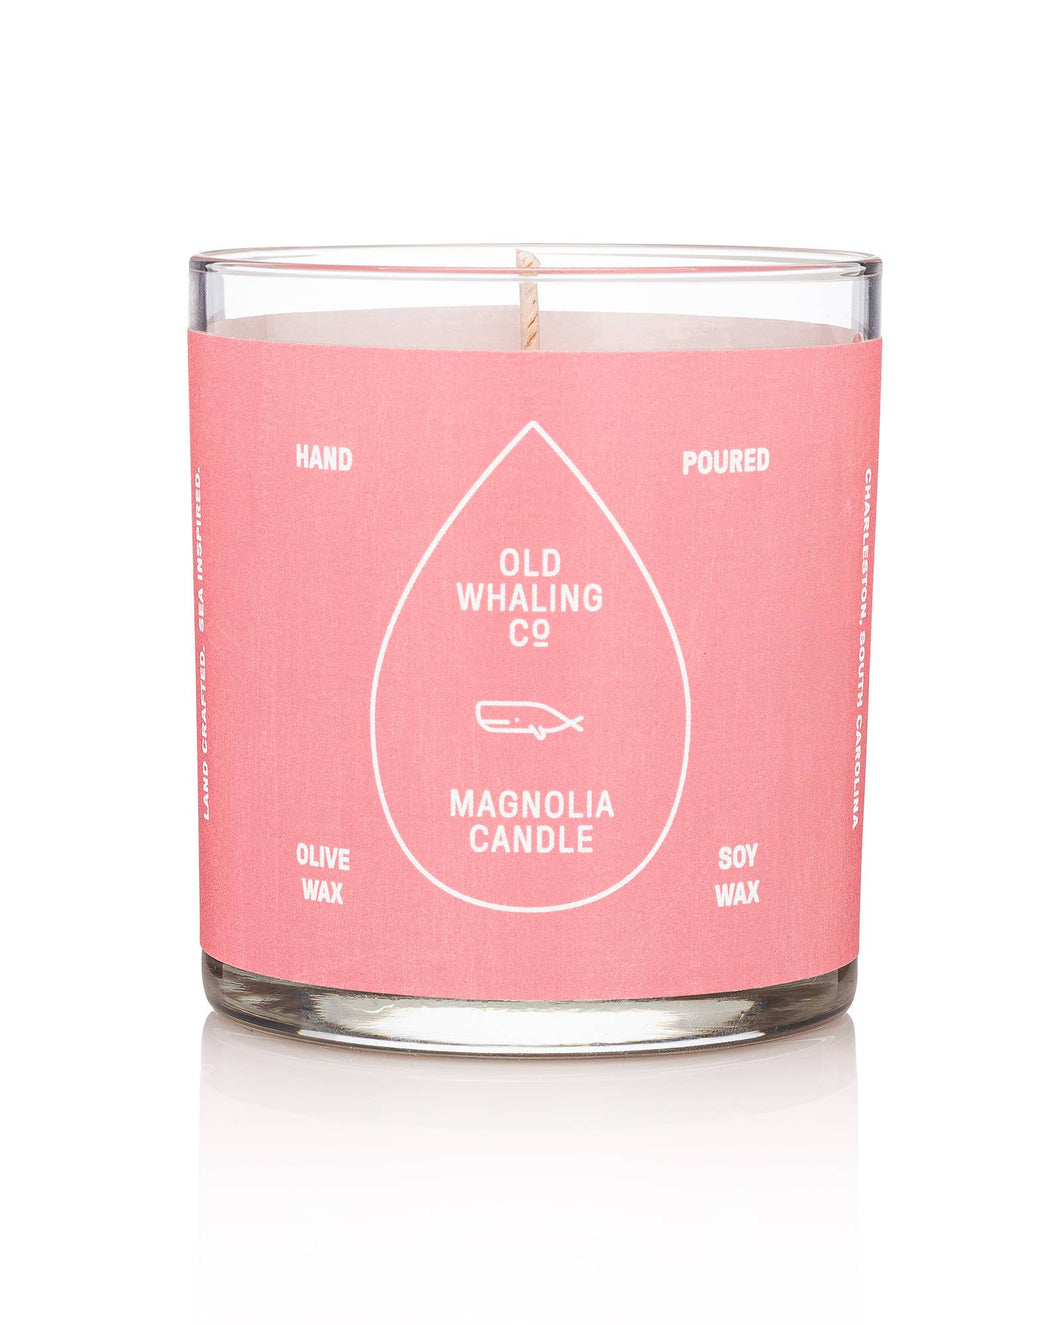 Old Whaling Company - Magnolia Candle